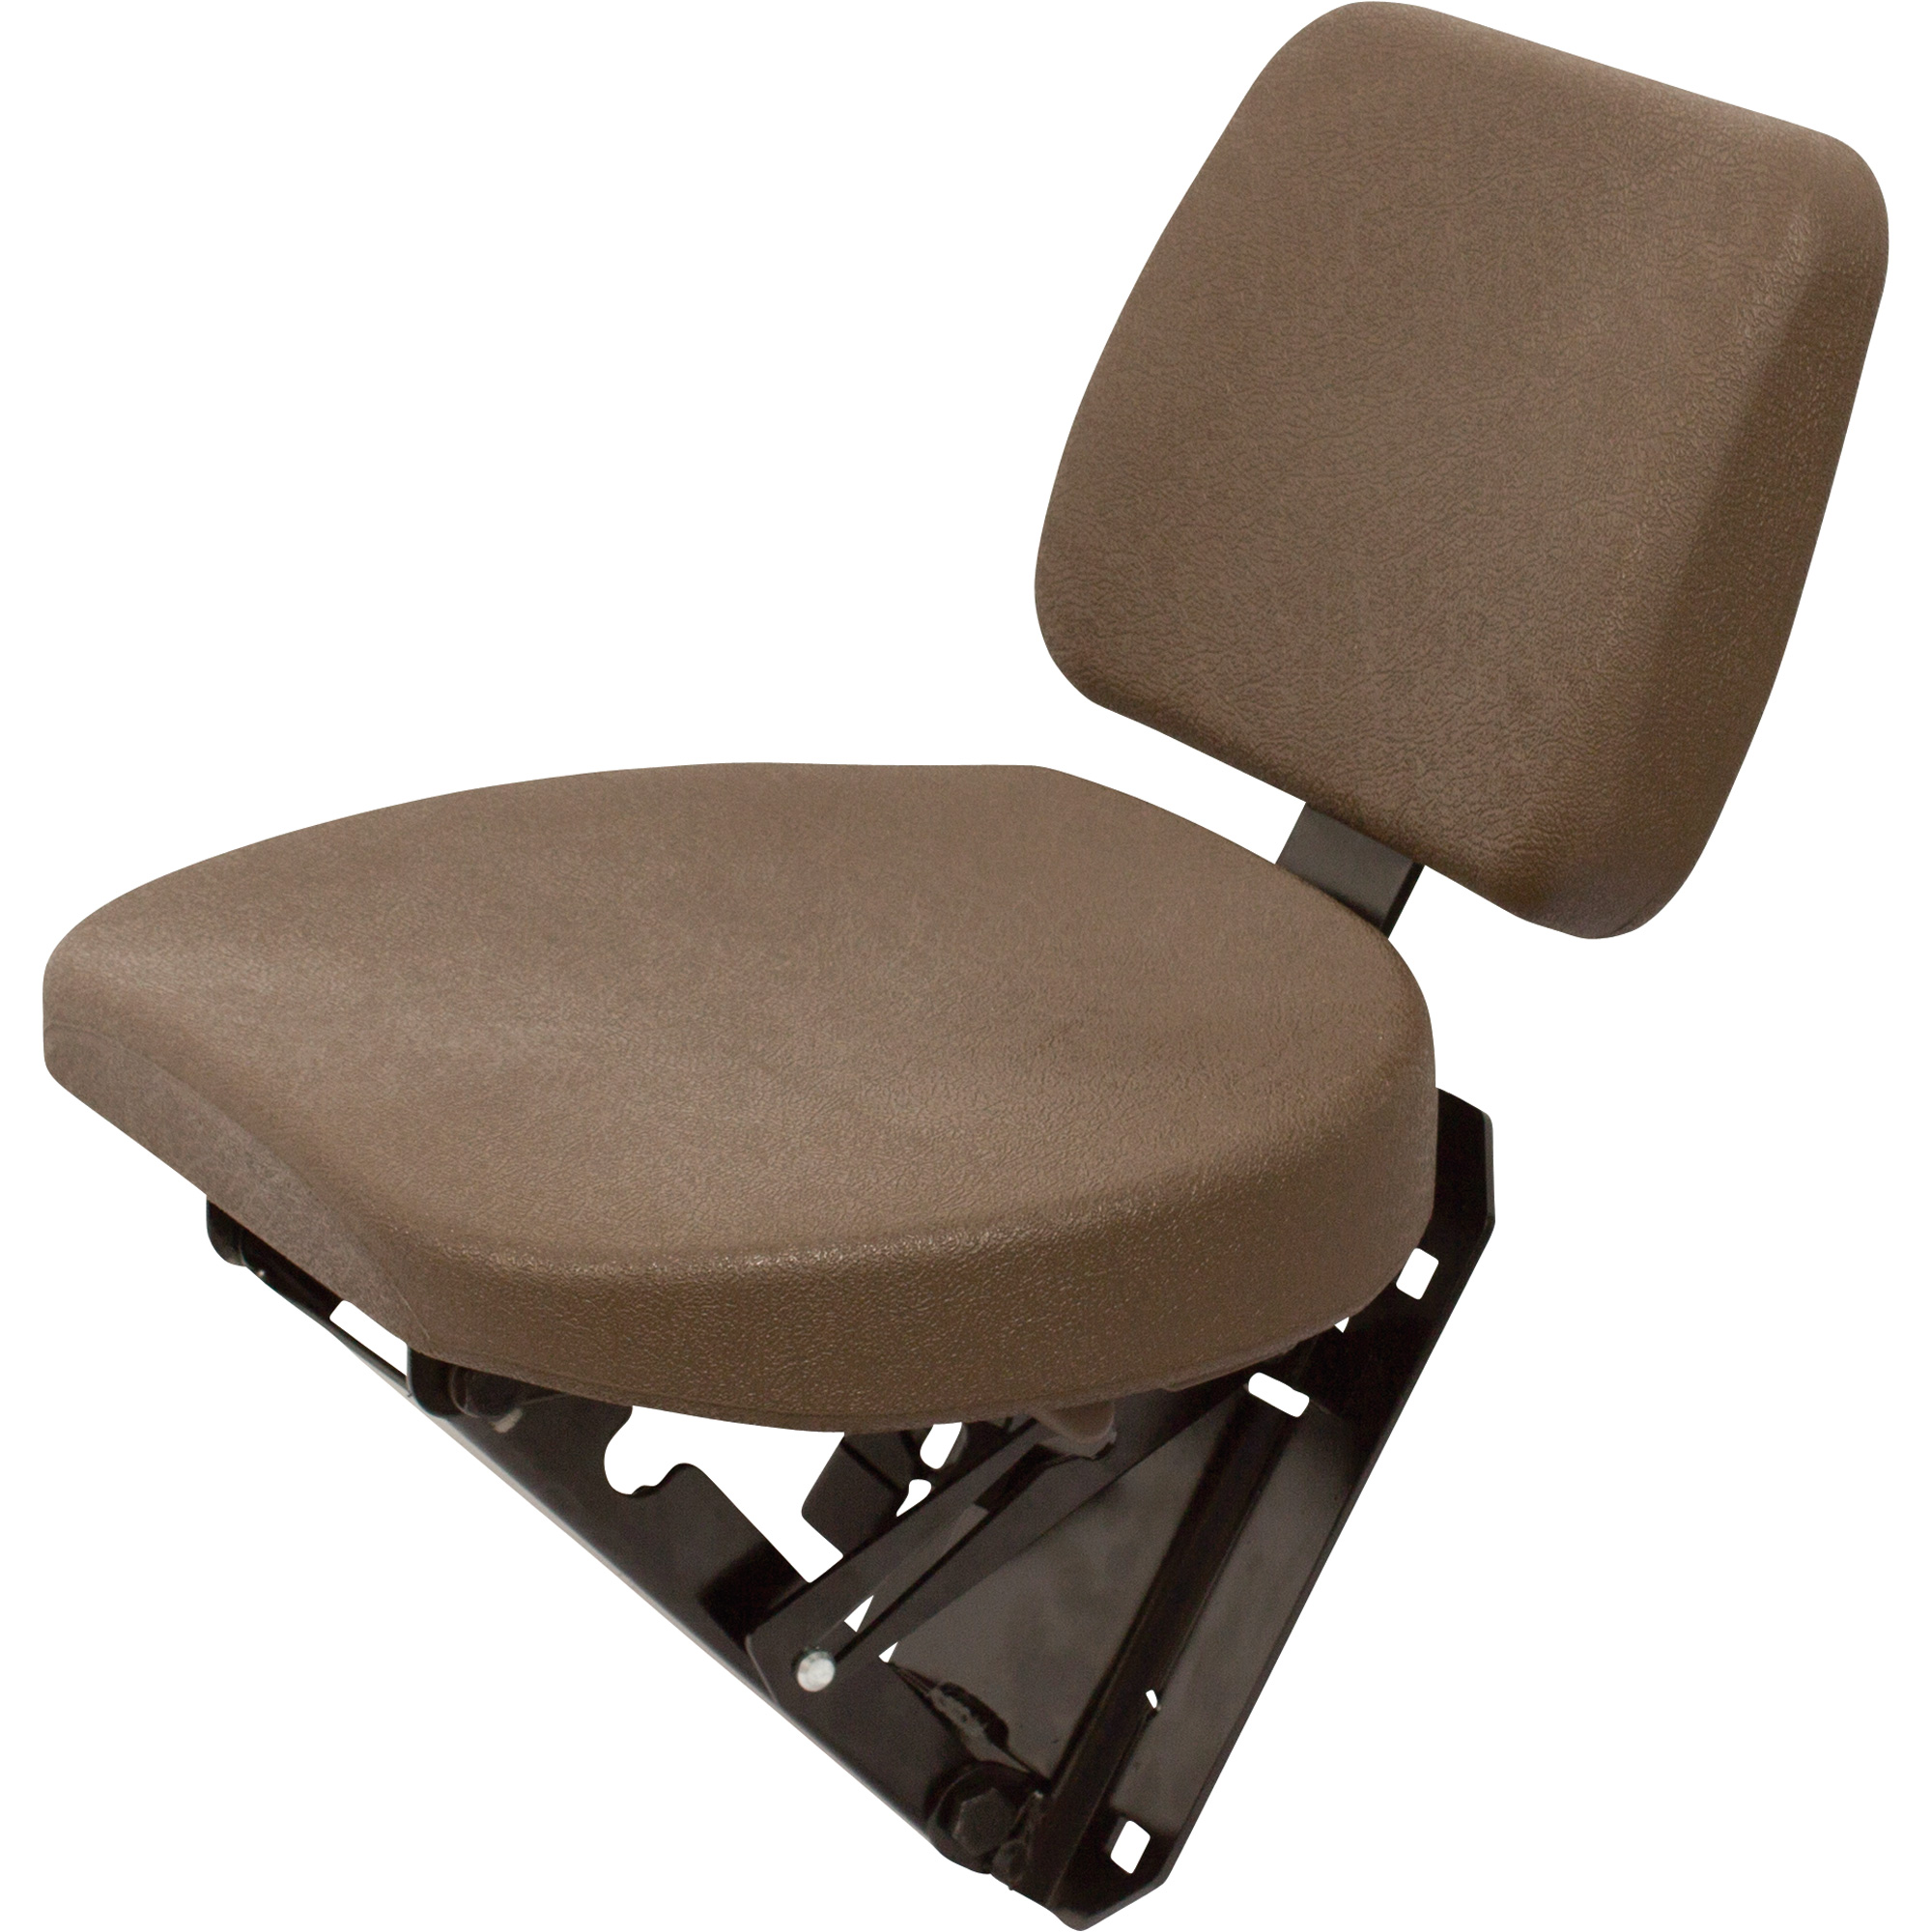 K And M Tractor Seats : K m buddy seat — for john deere and series